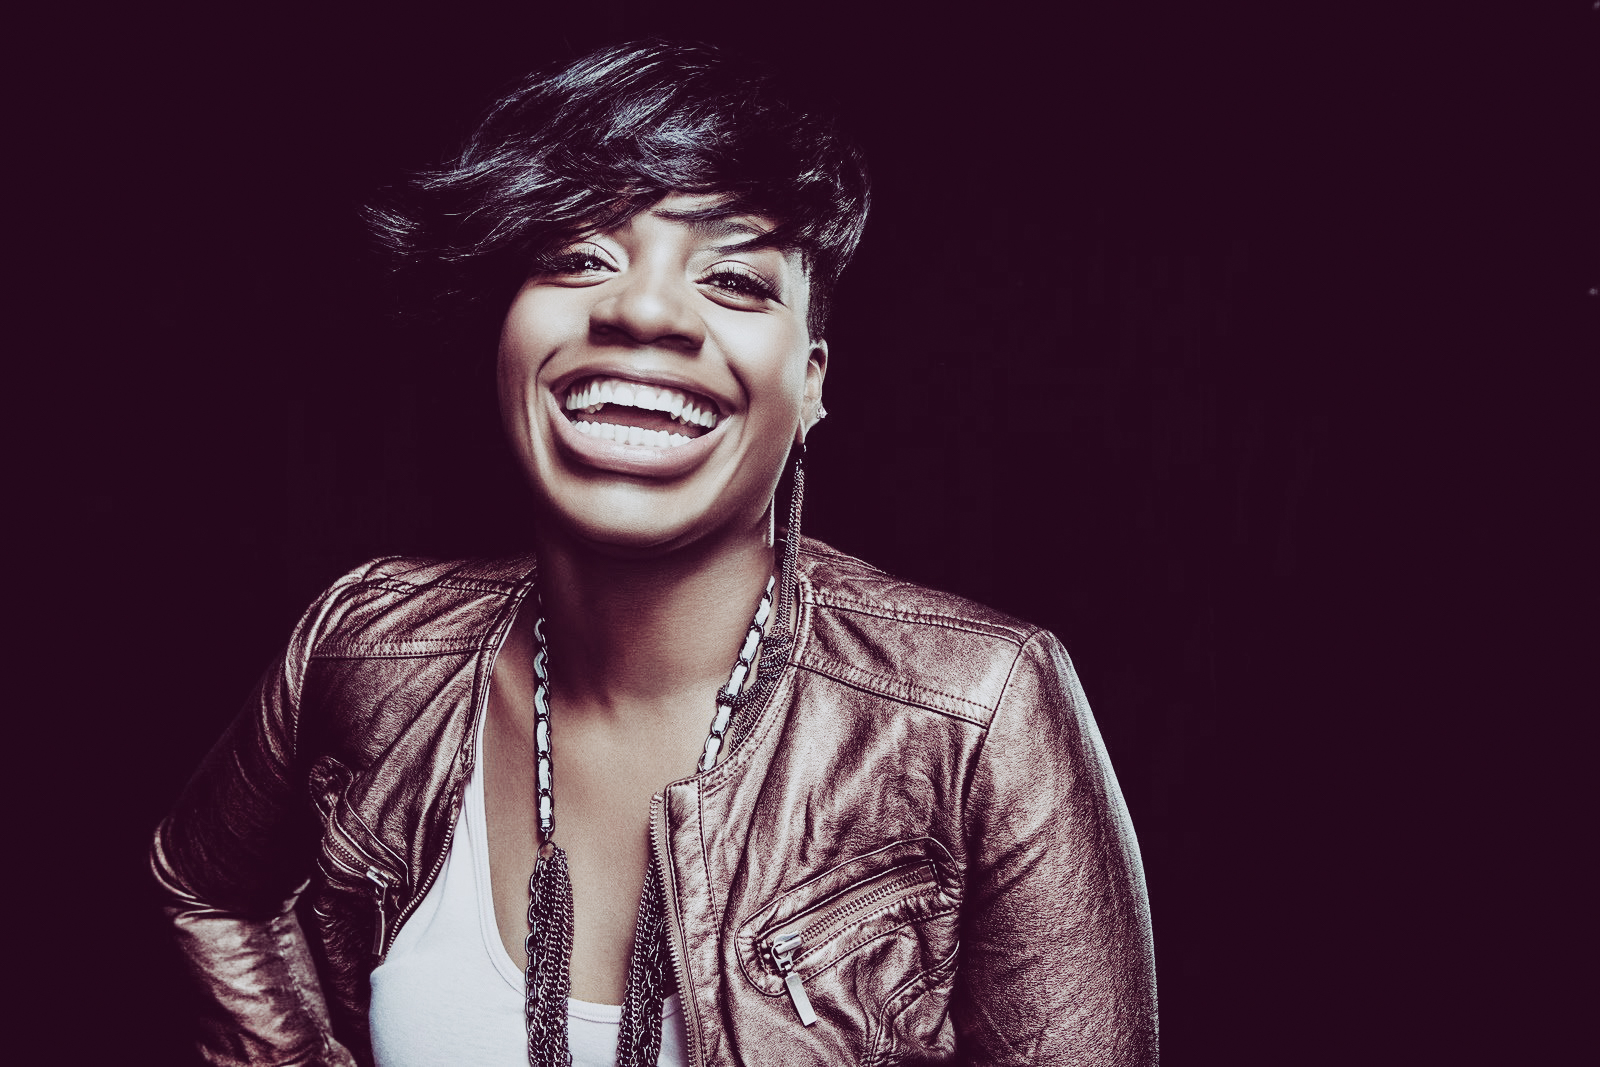 fantasia barrino dating young dro Fantasia barrino early life fantasia monique barrino is known professionally by the name fantasia was born in 1984 on 30 june she was born and raised in high point, north carolina, where she learned singing.